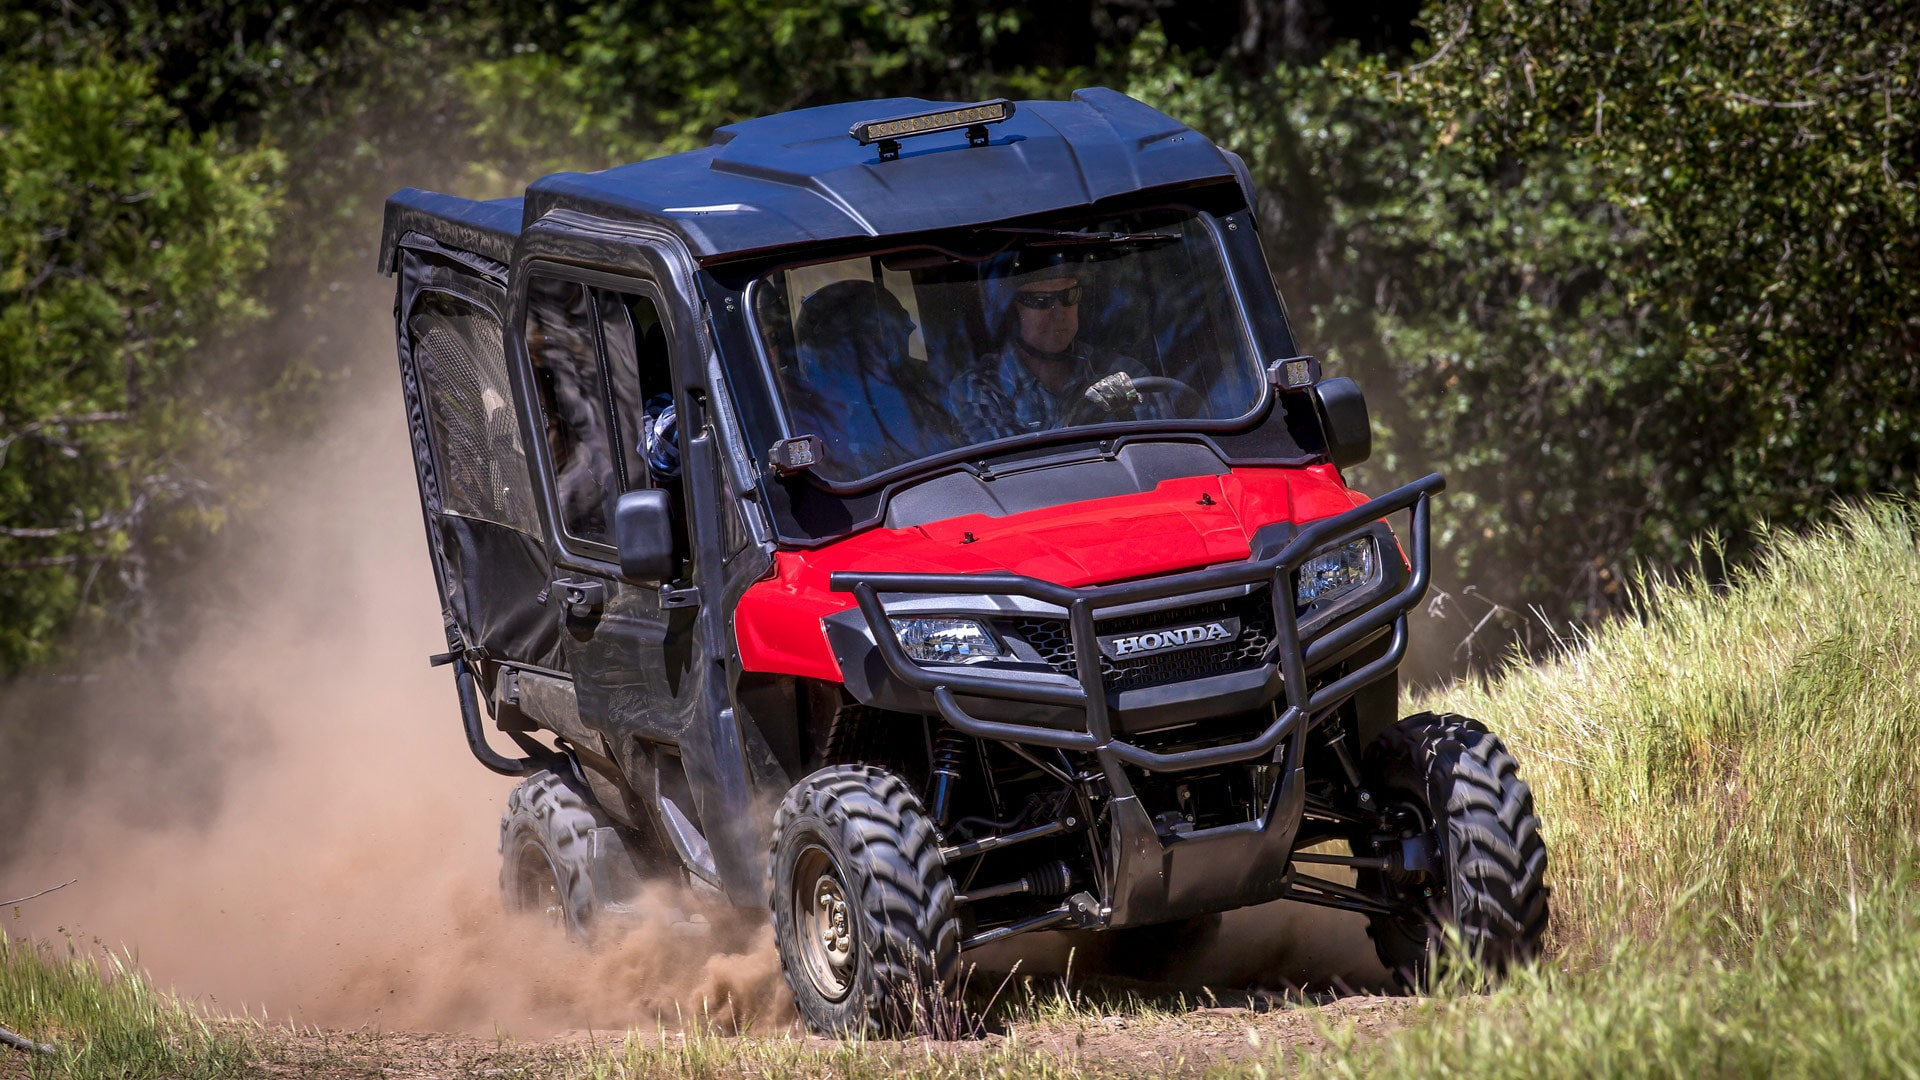 The Red Pioneer 7004 Equipped With Hard Roof Glass Windshield And Fabric Front: ATV Led Wiring Diagram At Johnprice.co